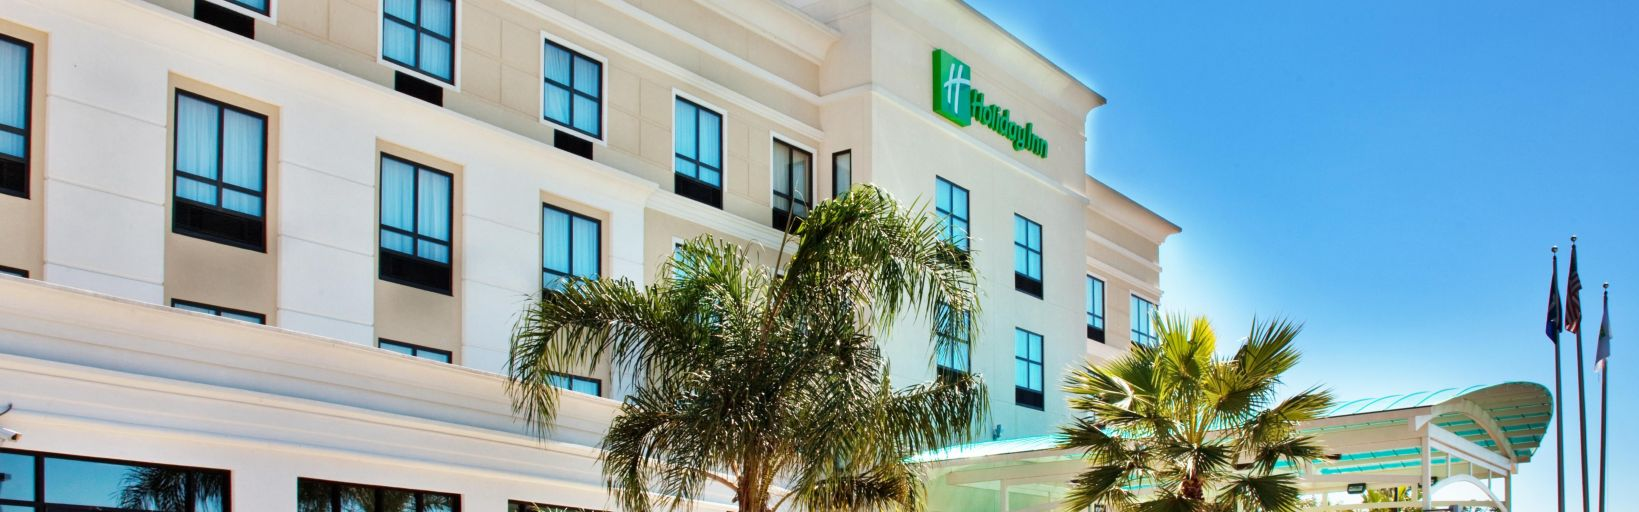 Front Desk Photo Hotel Is Conveniently Located In Houma Louisiana